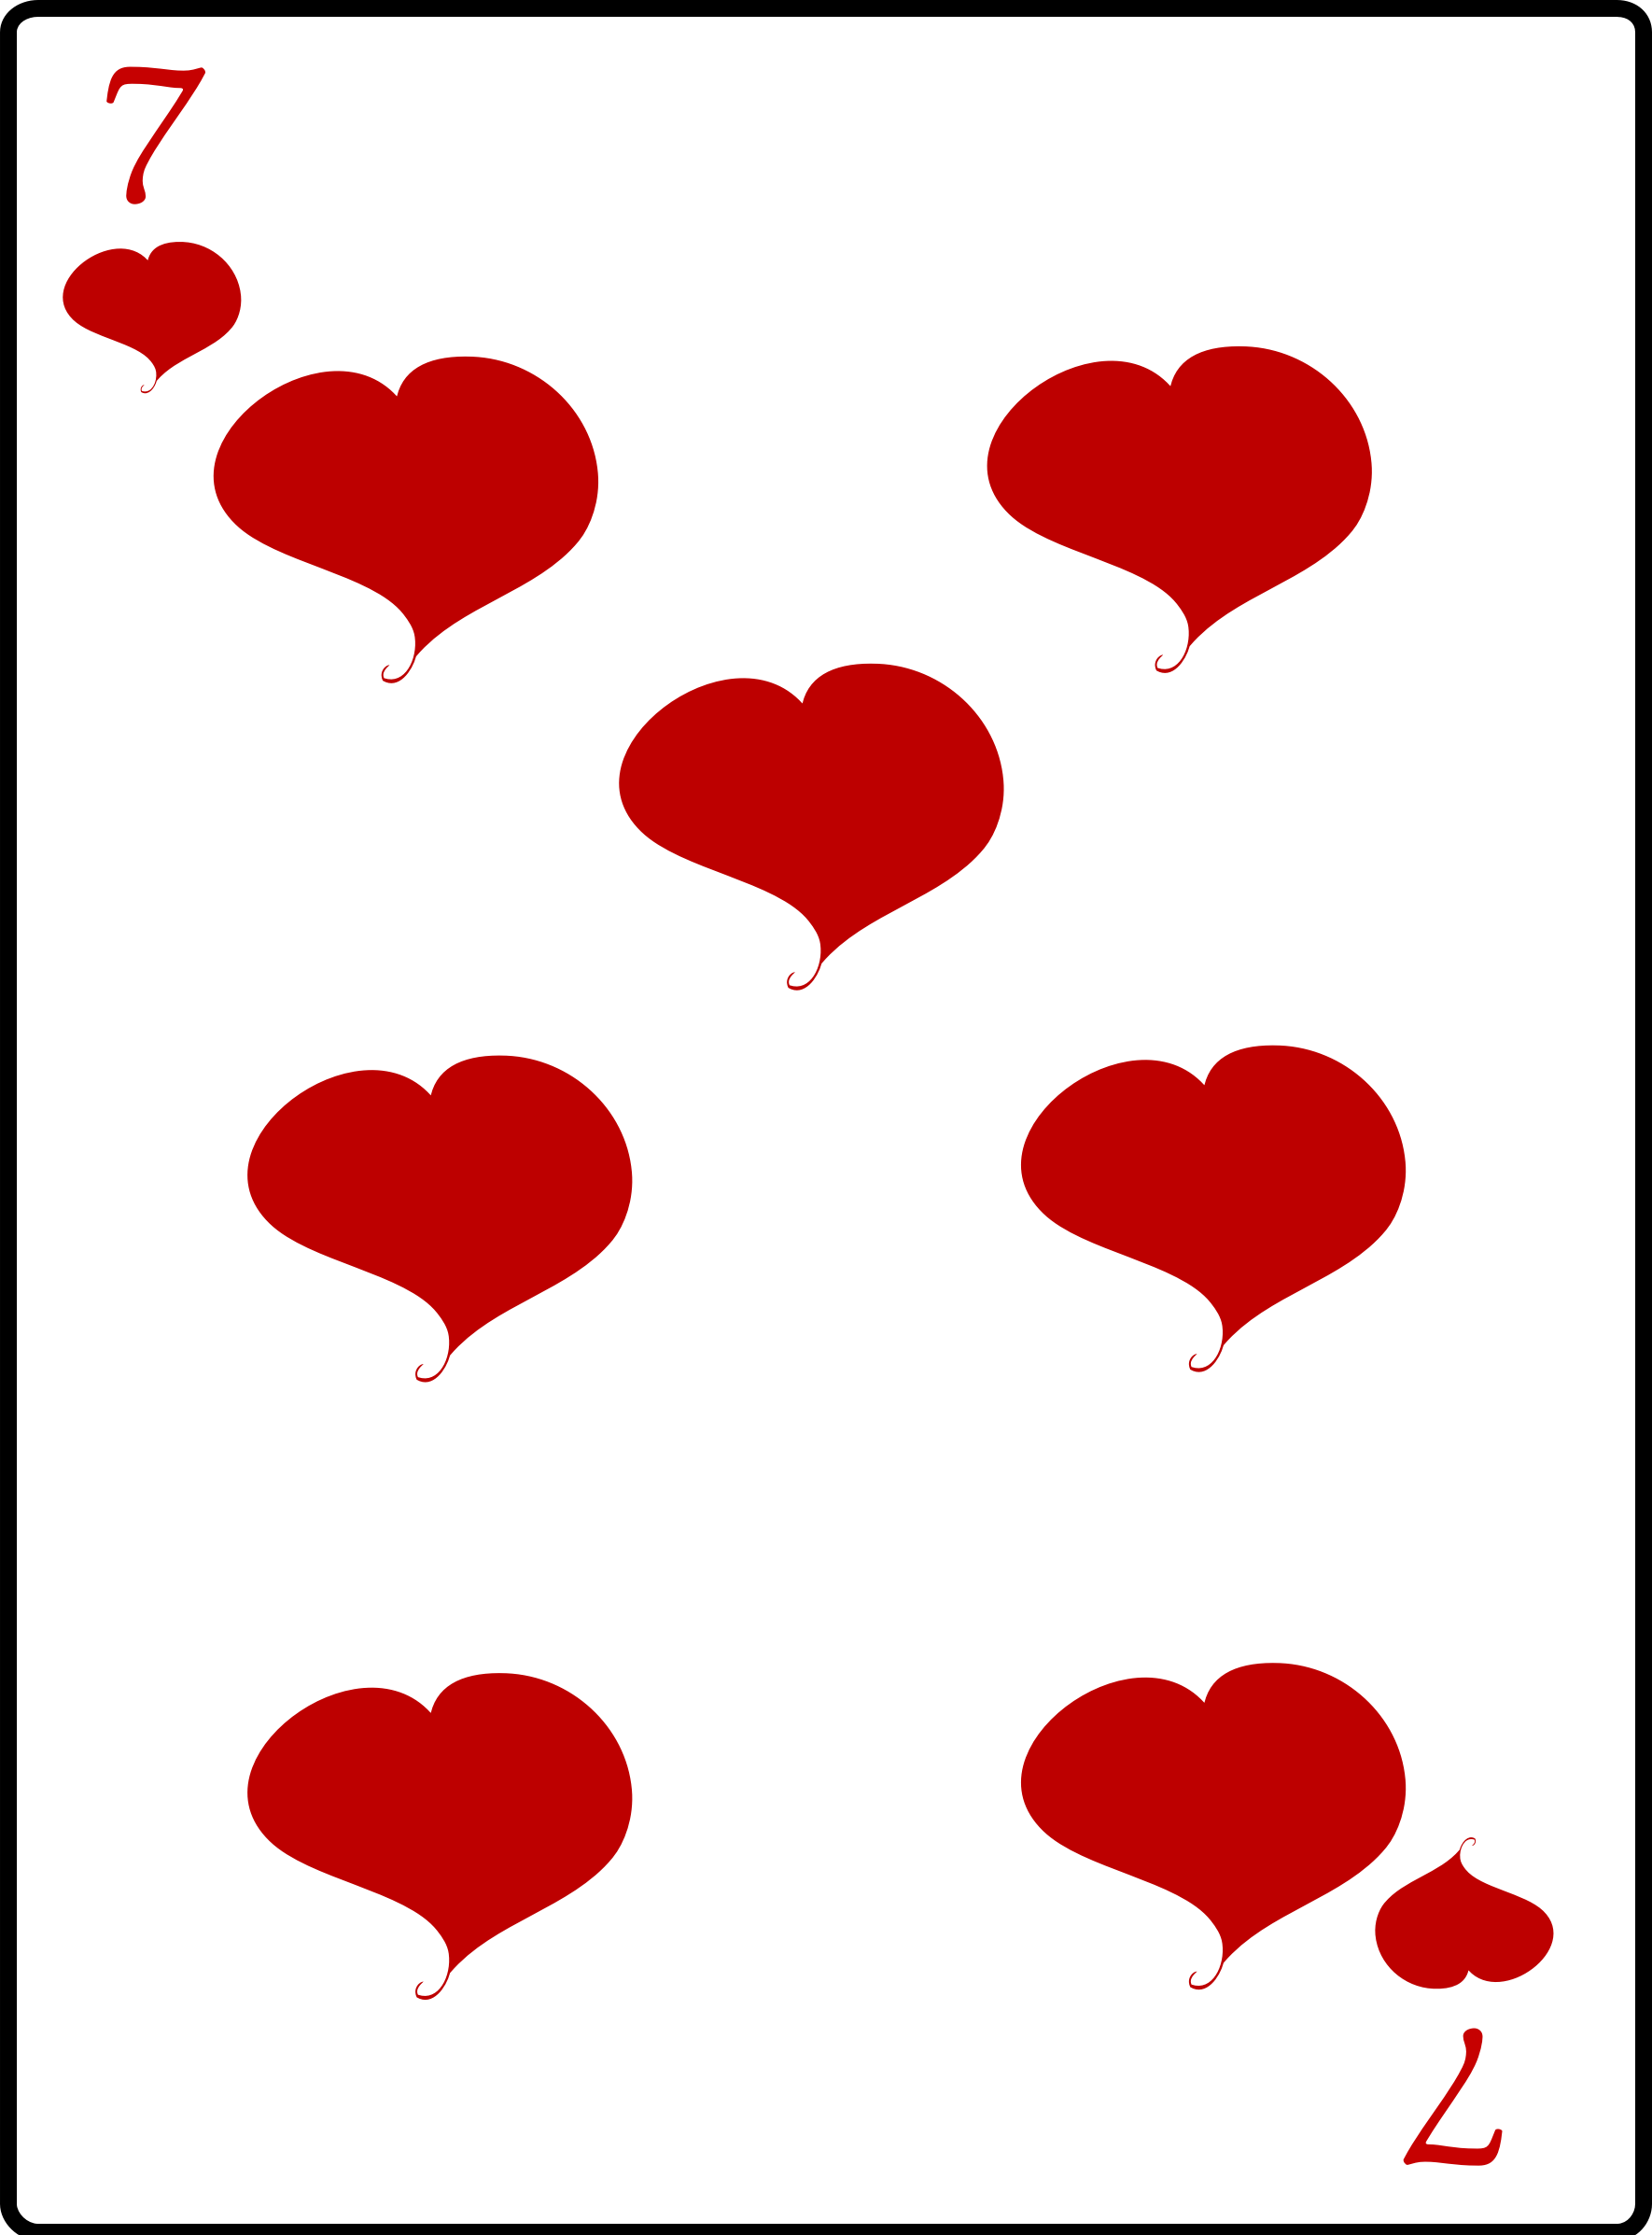 7 of Hearts by casino